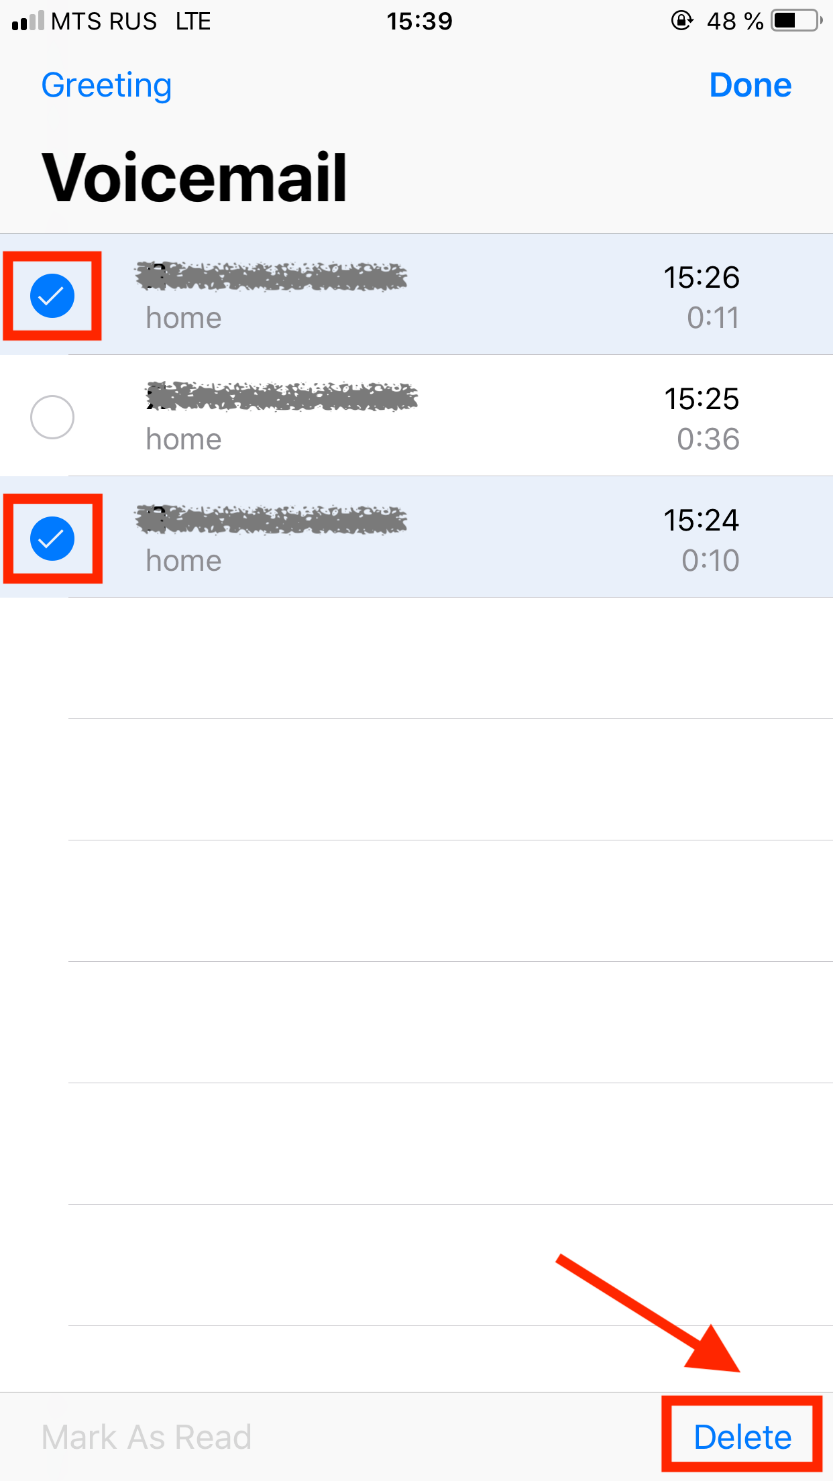 Select the messages you want to delete - Voicemail